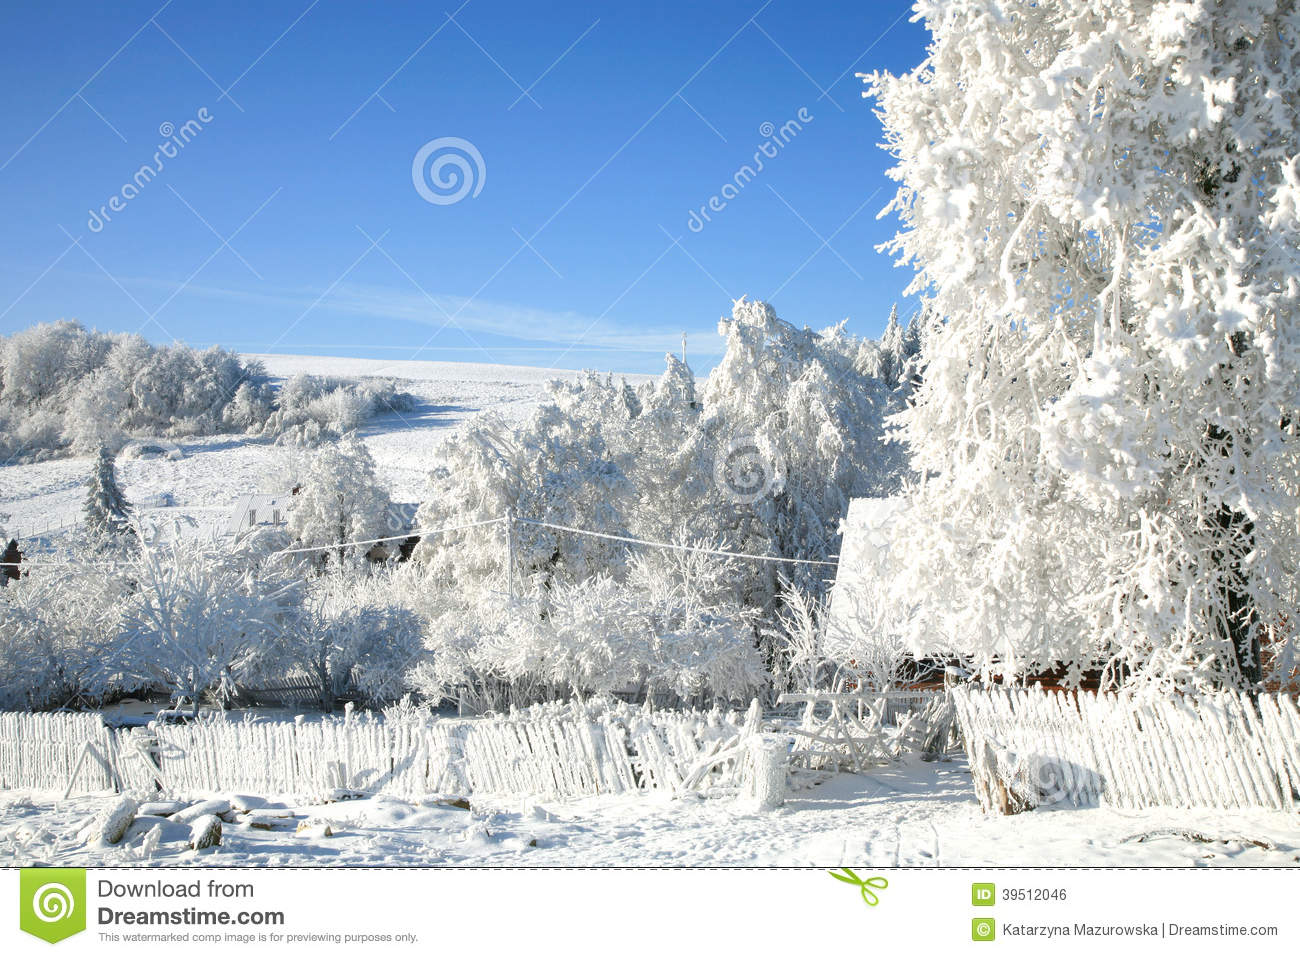 Snowy, winter country